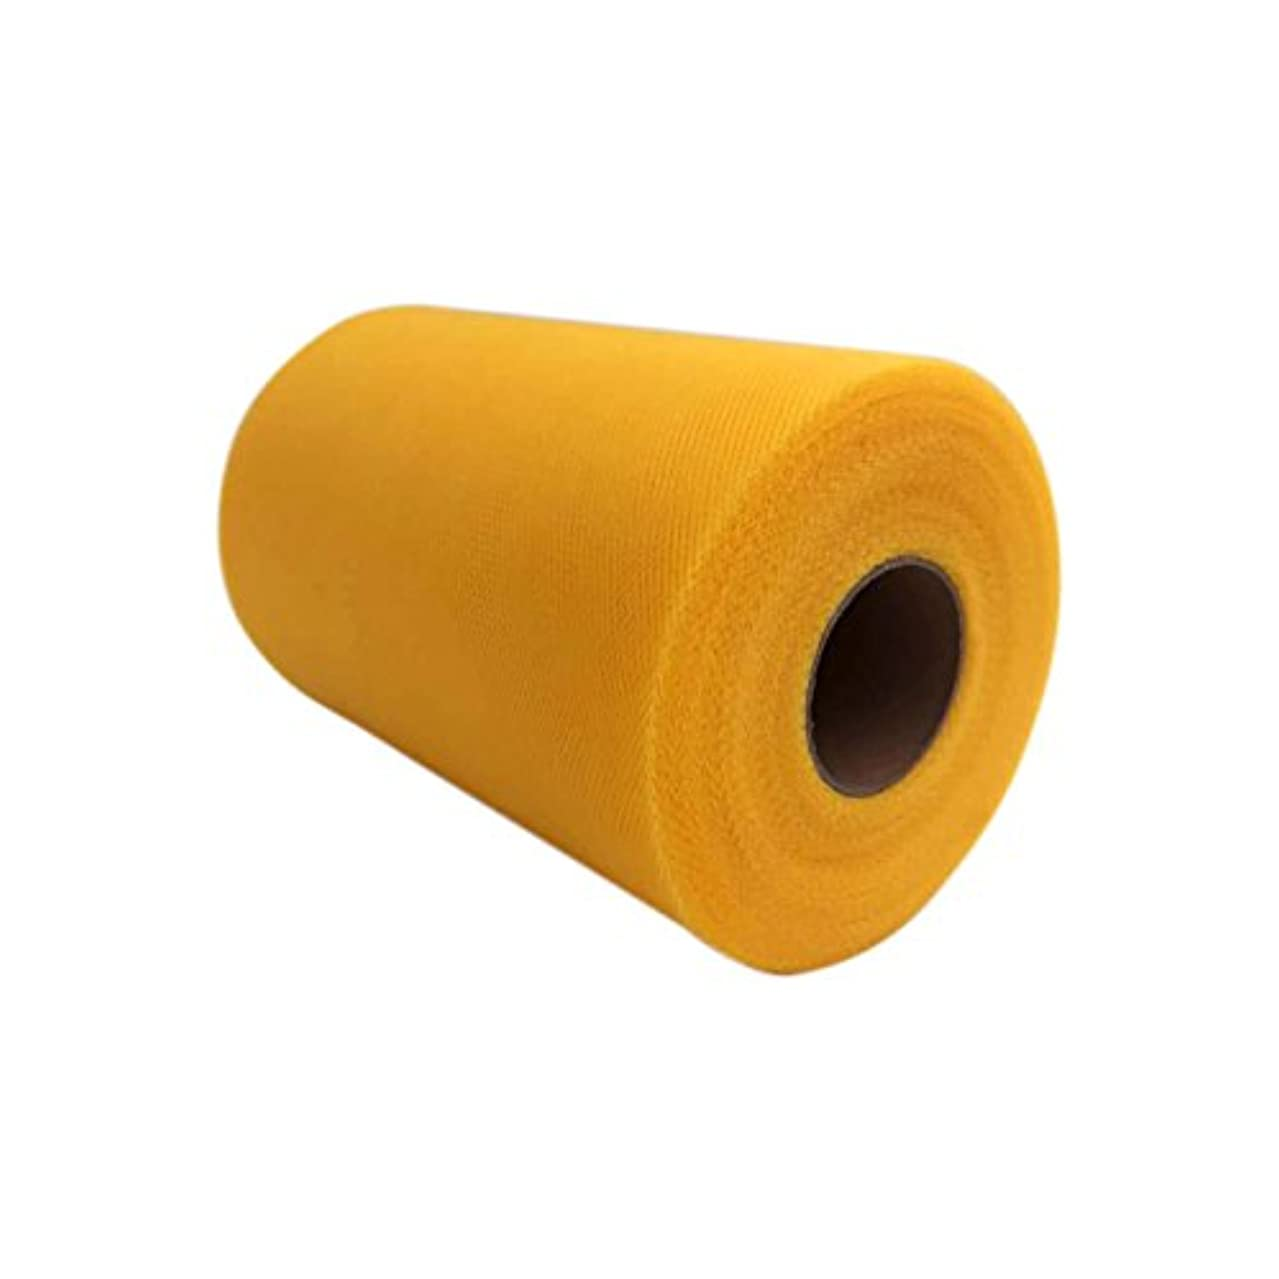 Tulle Roll Spool 6 Inch x 100 Yards (300FT) Wedding Party Decoration,Tutu Skirts with Elastic Band by RayCC (Yellow Colour)